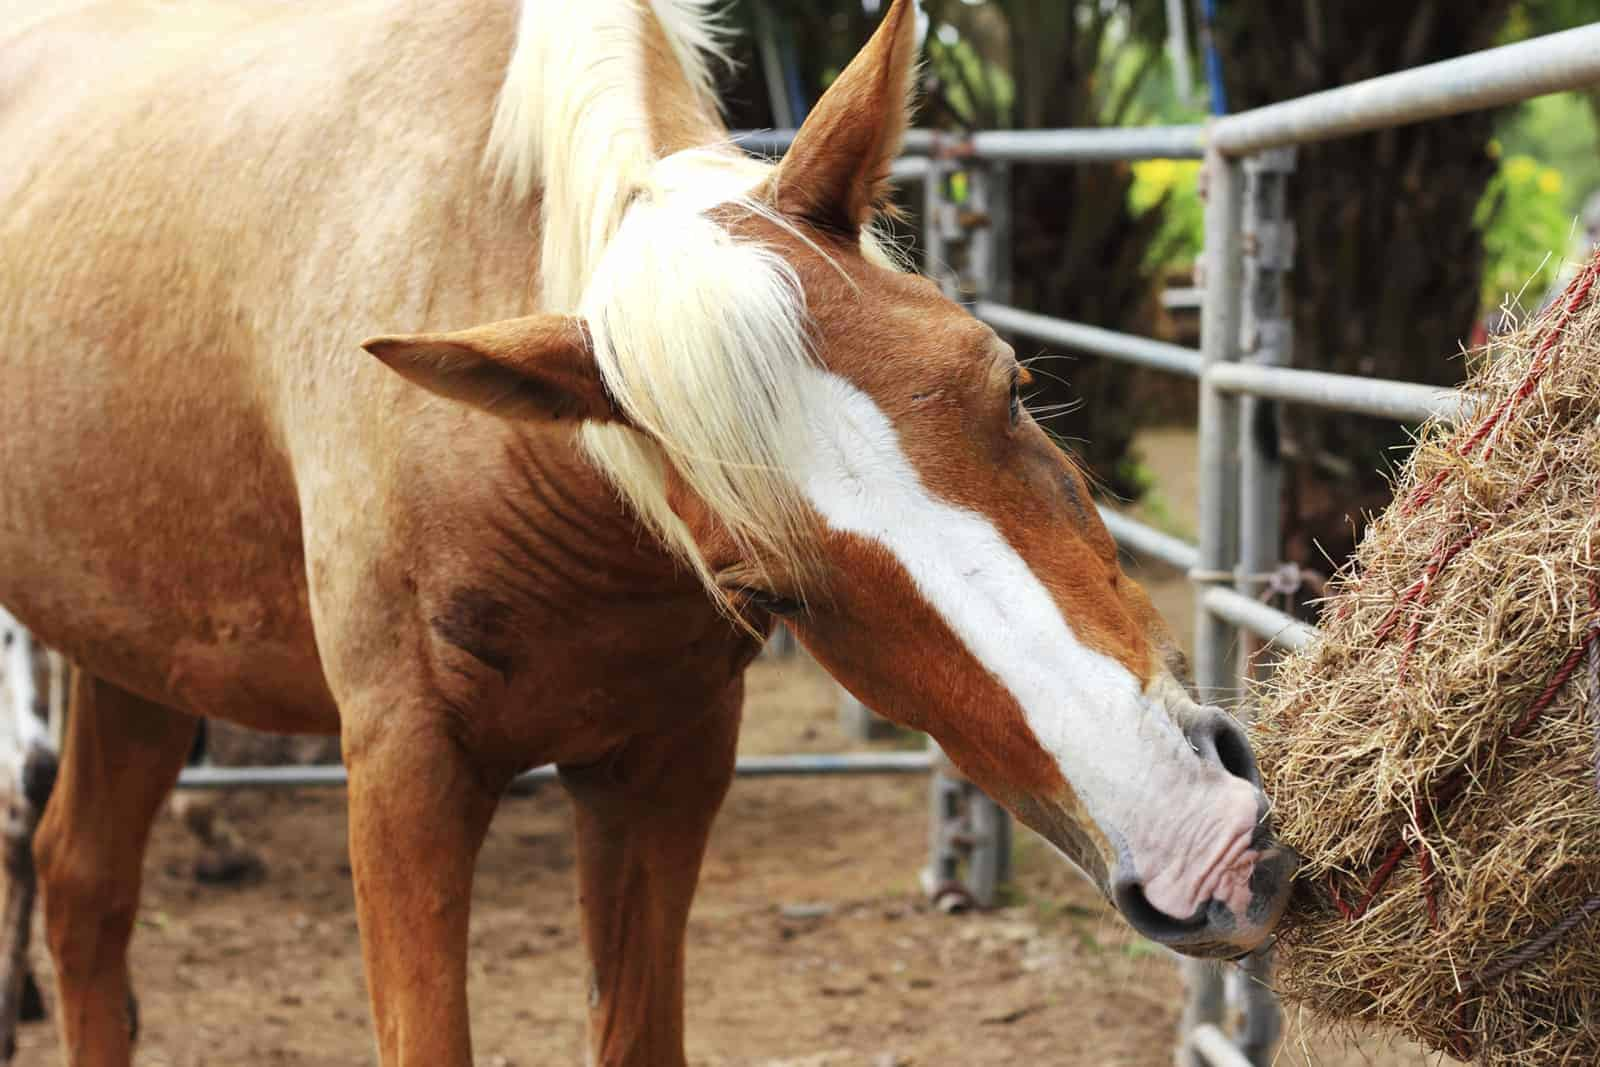 Can Management Help an Ulcer-Prone Horse?